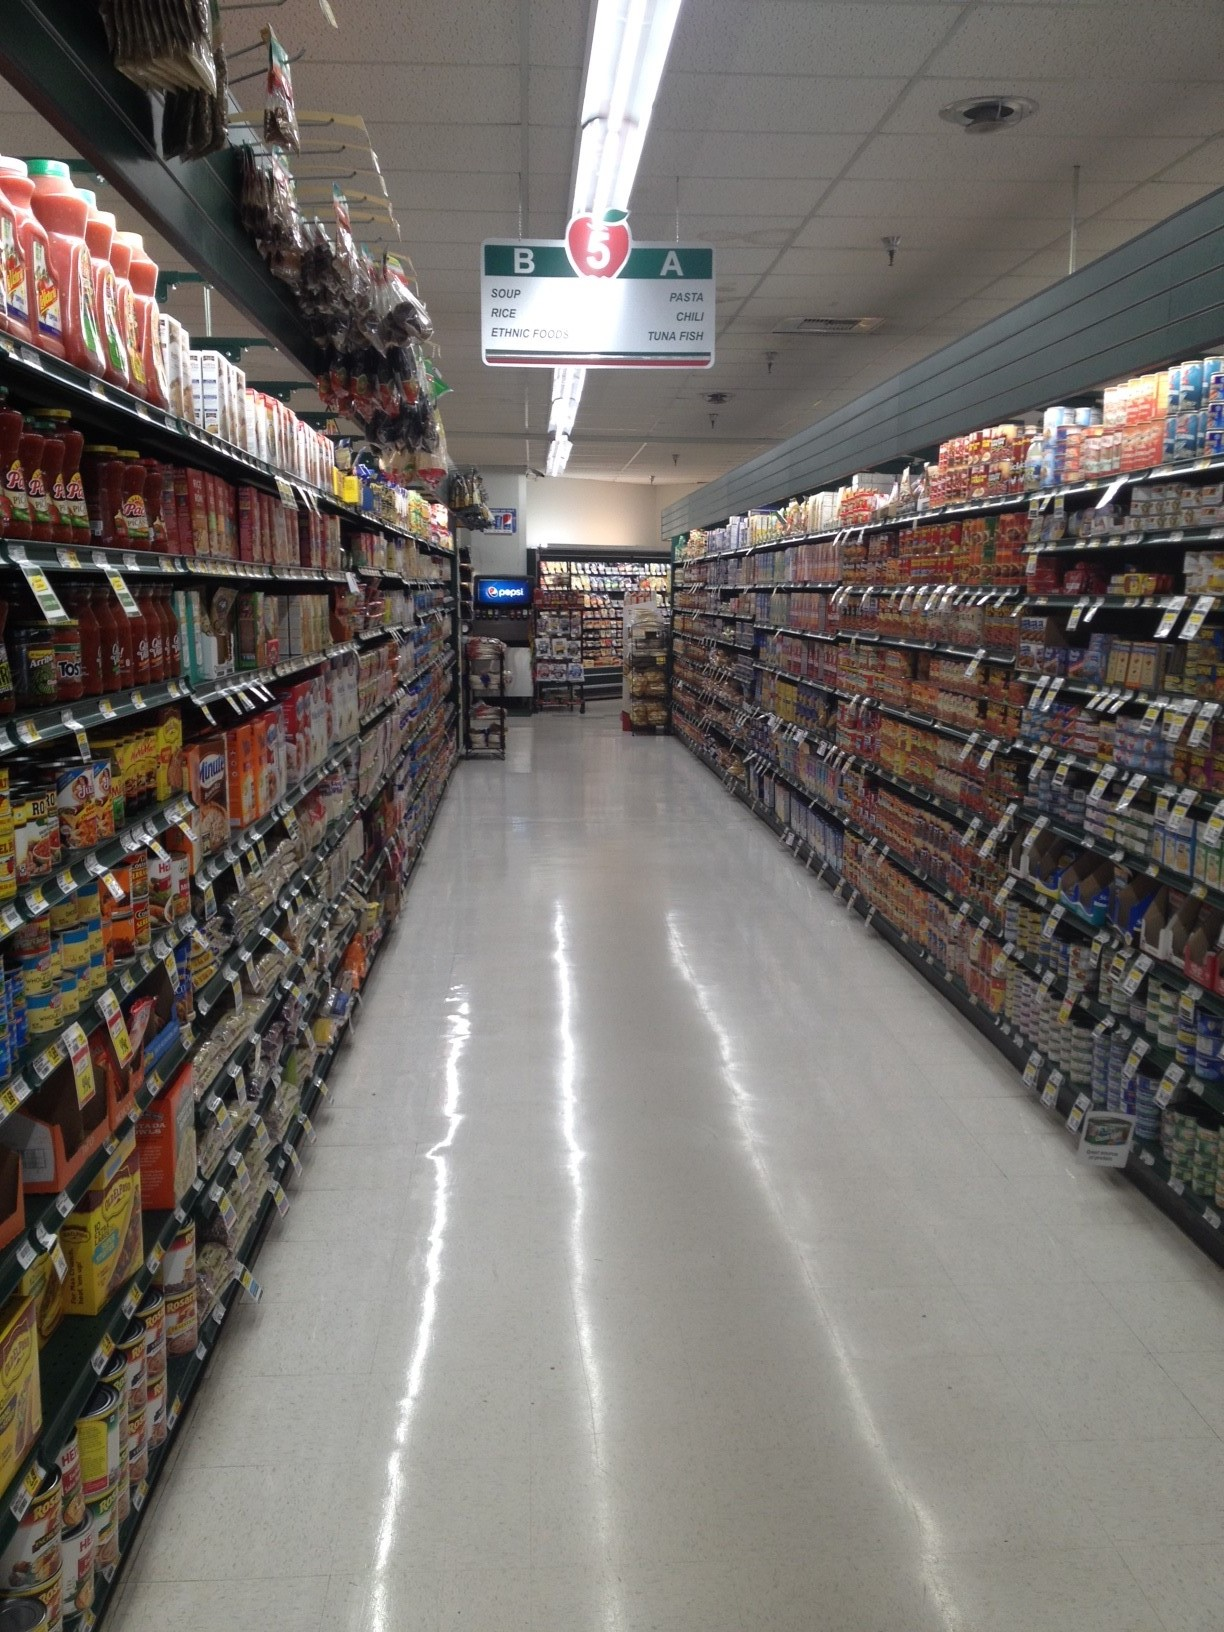 This led plug and play plus installation saved the Red Apple Market in Bremerton, WA Over $70,000. with an Electricity savings of over $7,800 per year and a roi of over 900% all the while increasing Light levels by over 36%